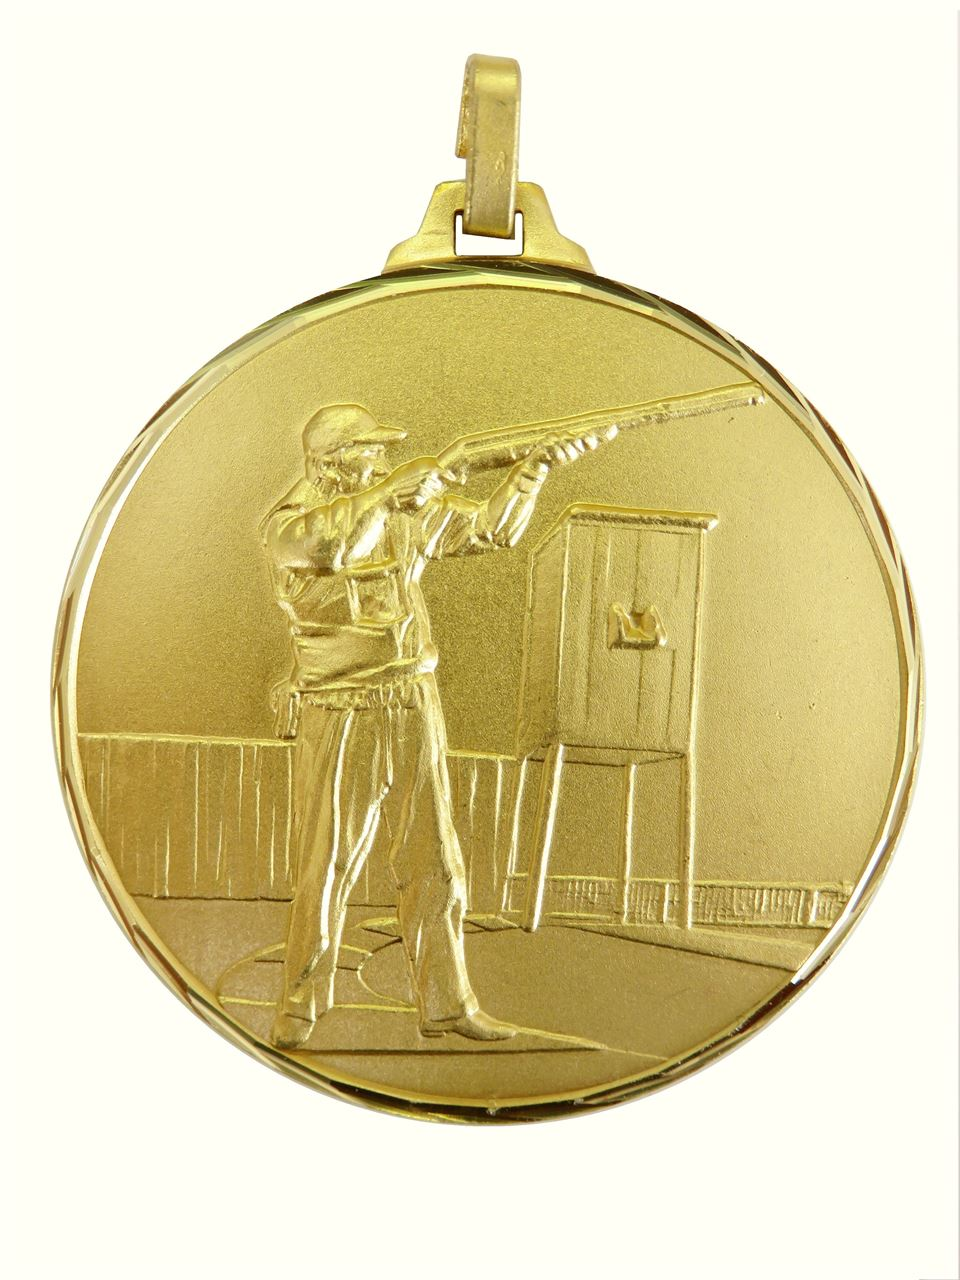 Gold Faceted Clay Pigeon Medal (size: 52mm) - 331F/52G